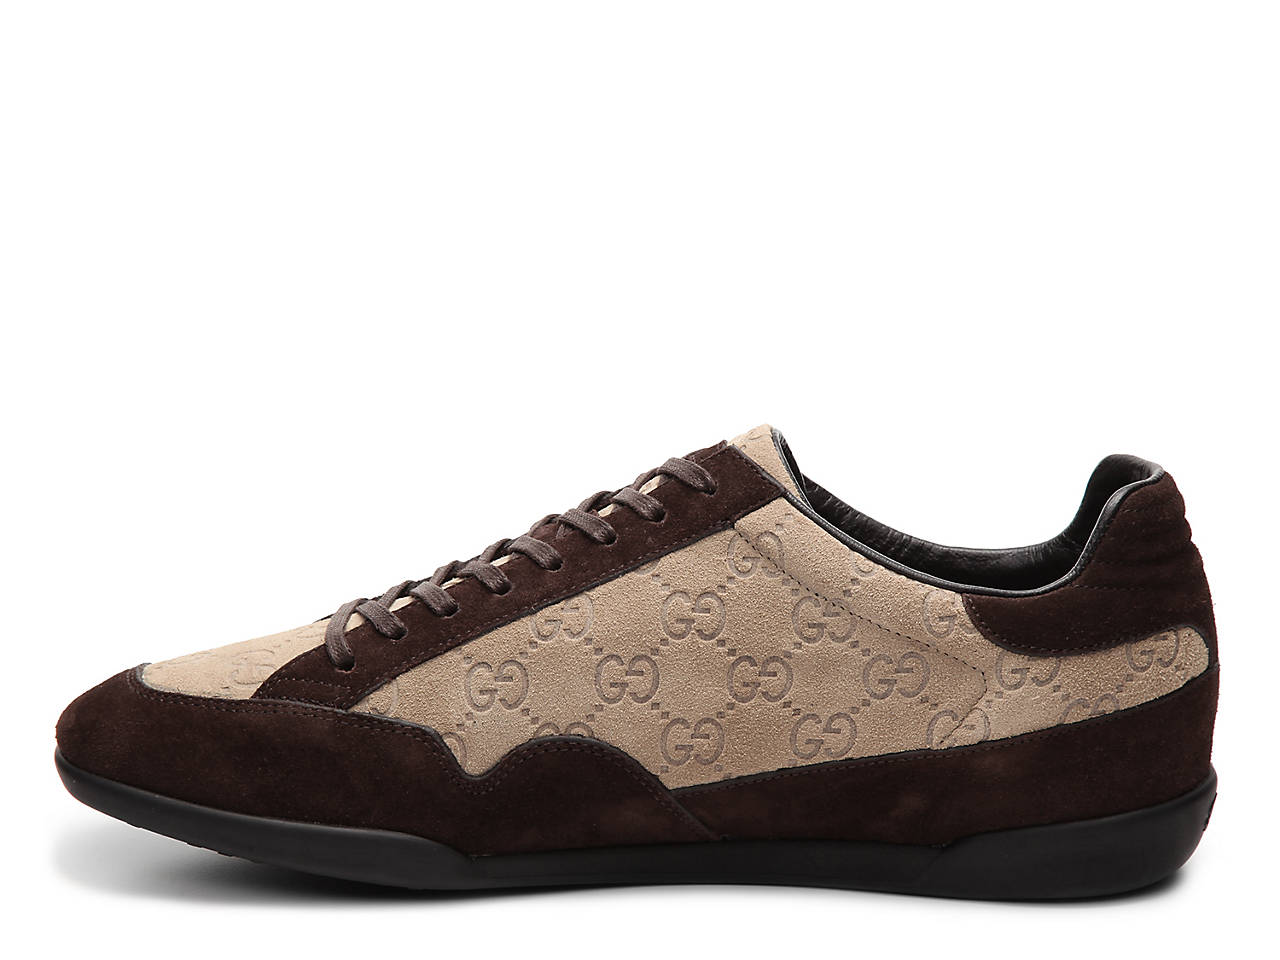 fc5649afbed4 Gucci - Fragrance Final Sale - Canvas   Suede GG Sneaker Men s Shoes ...